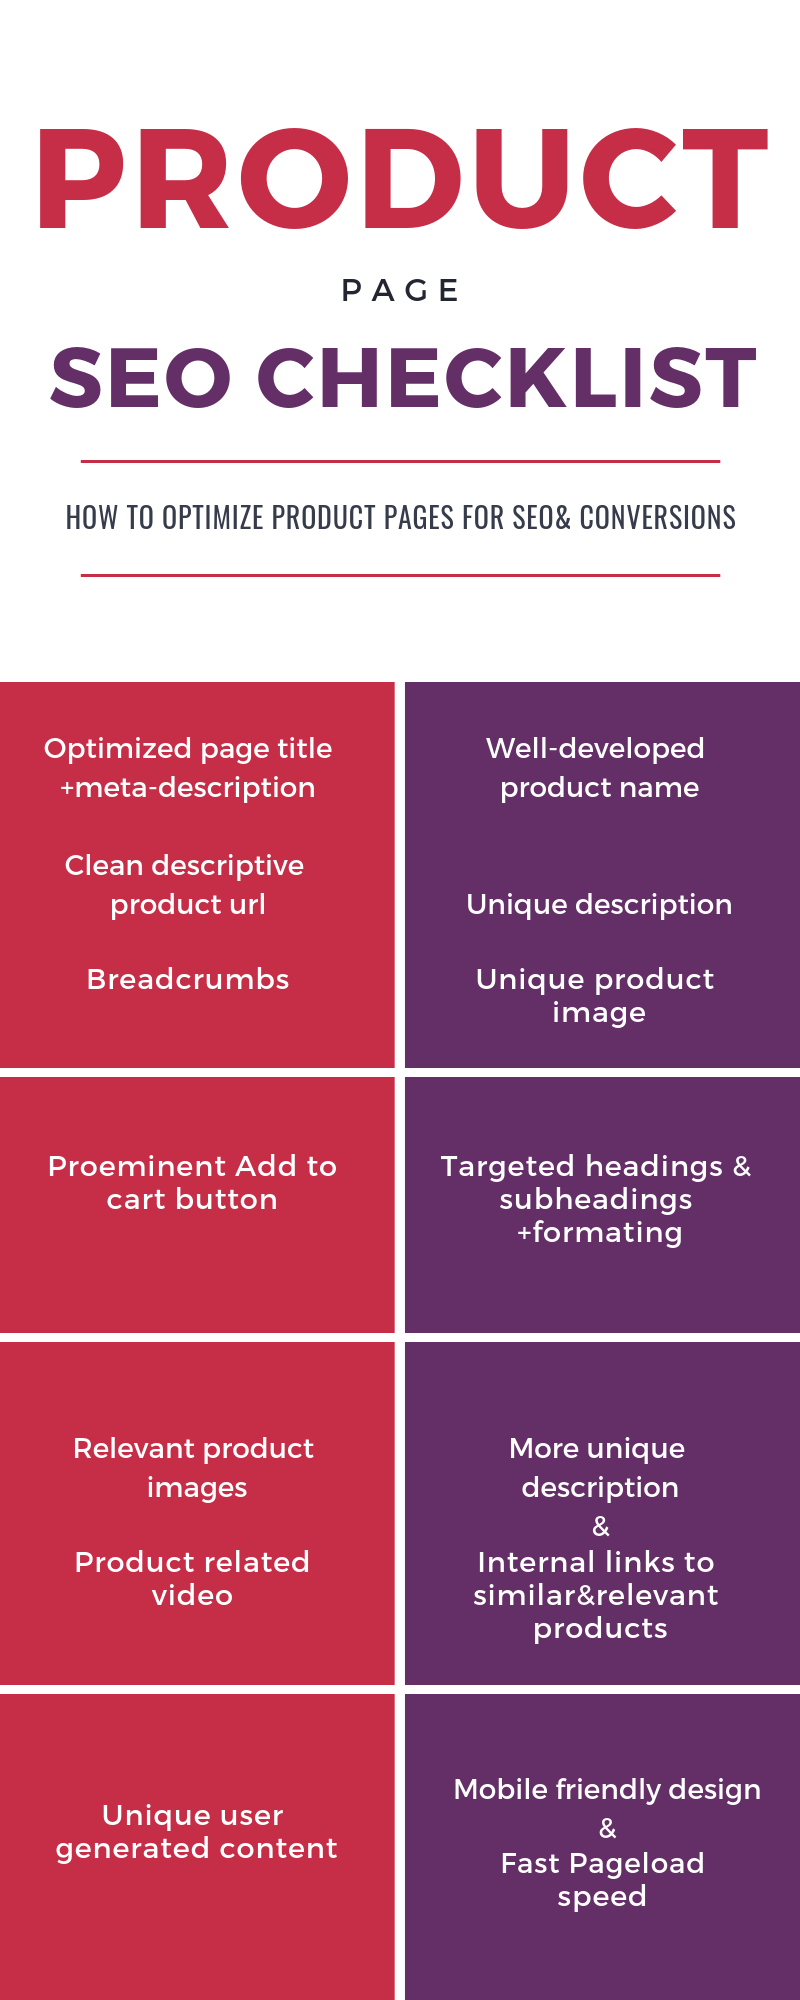 Product page SEO checklist